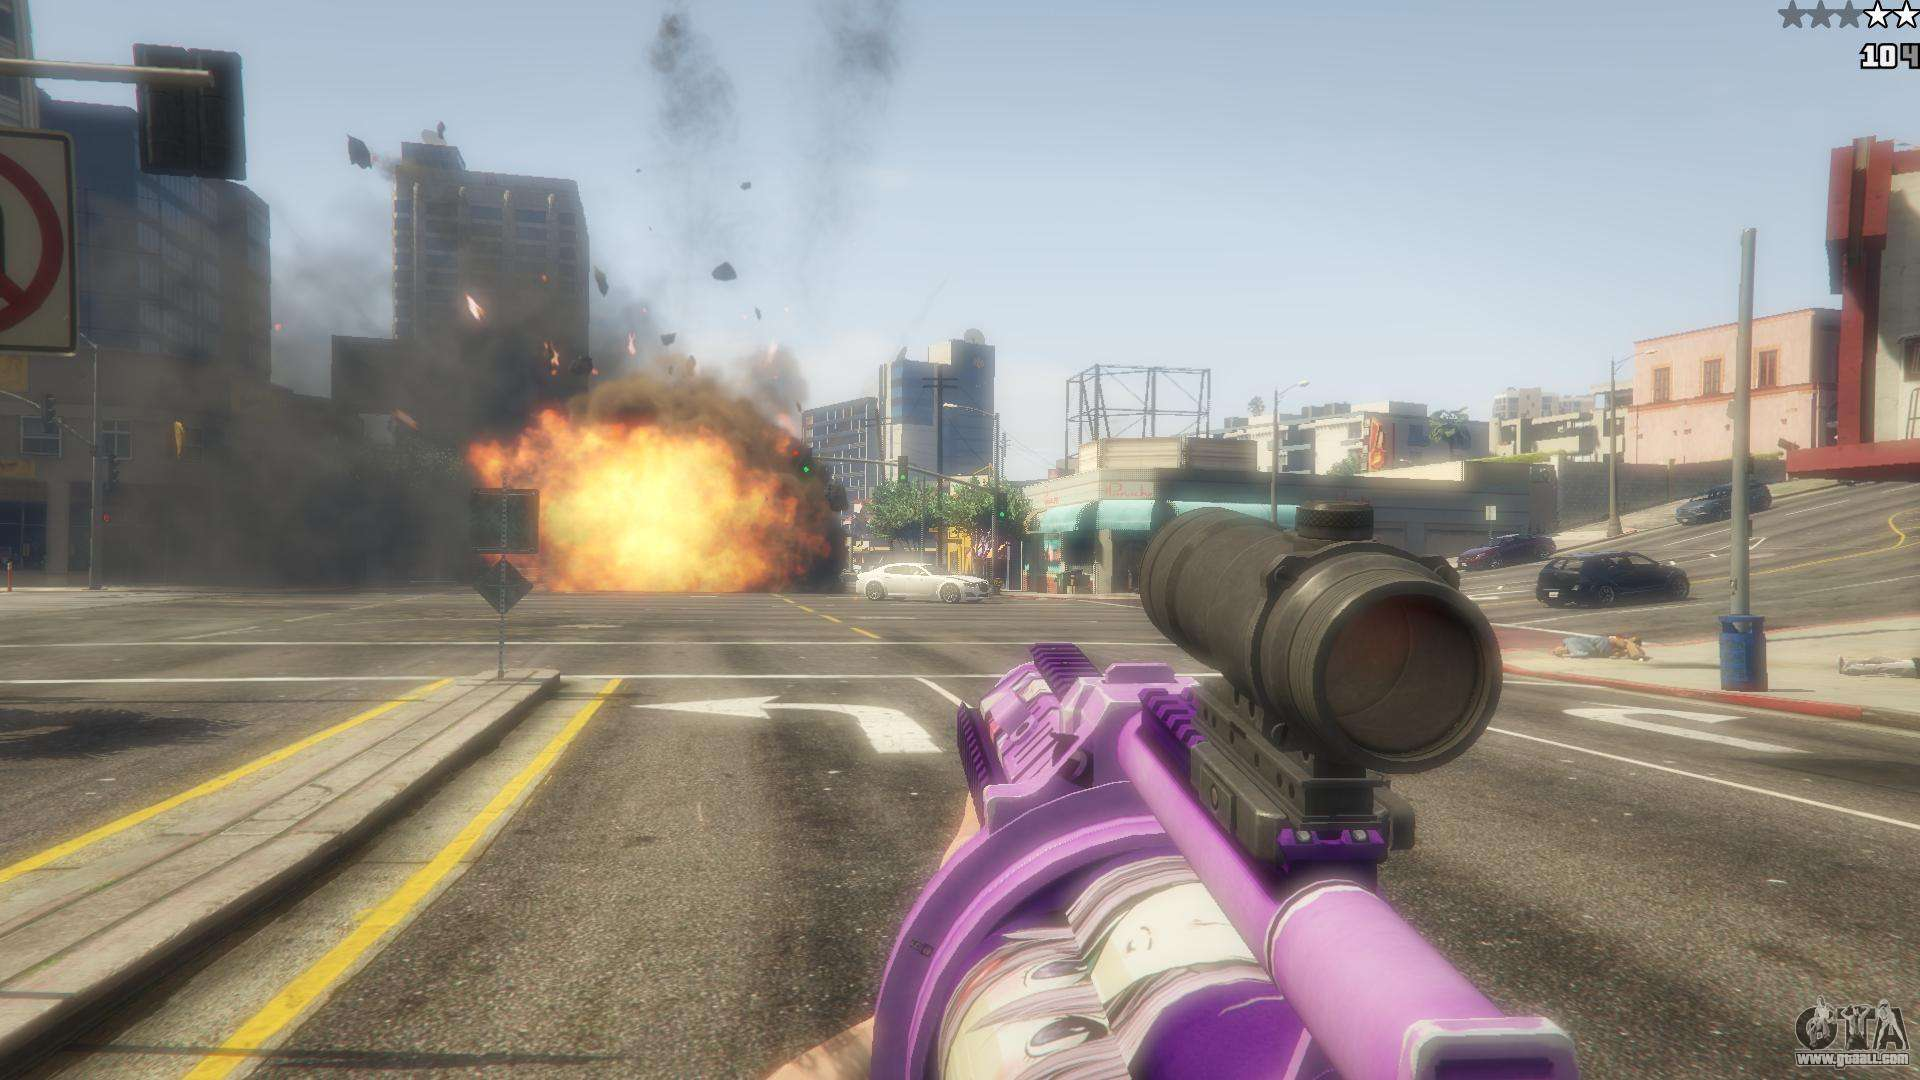 anime grenade launcher for gta